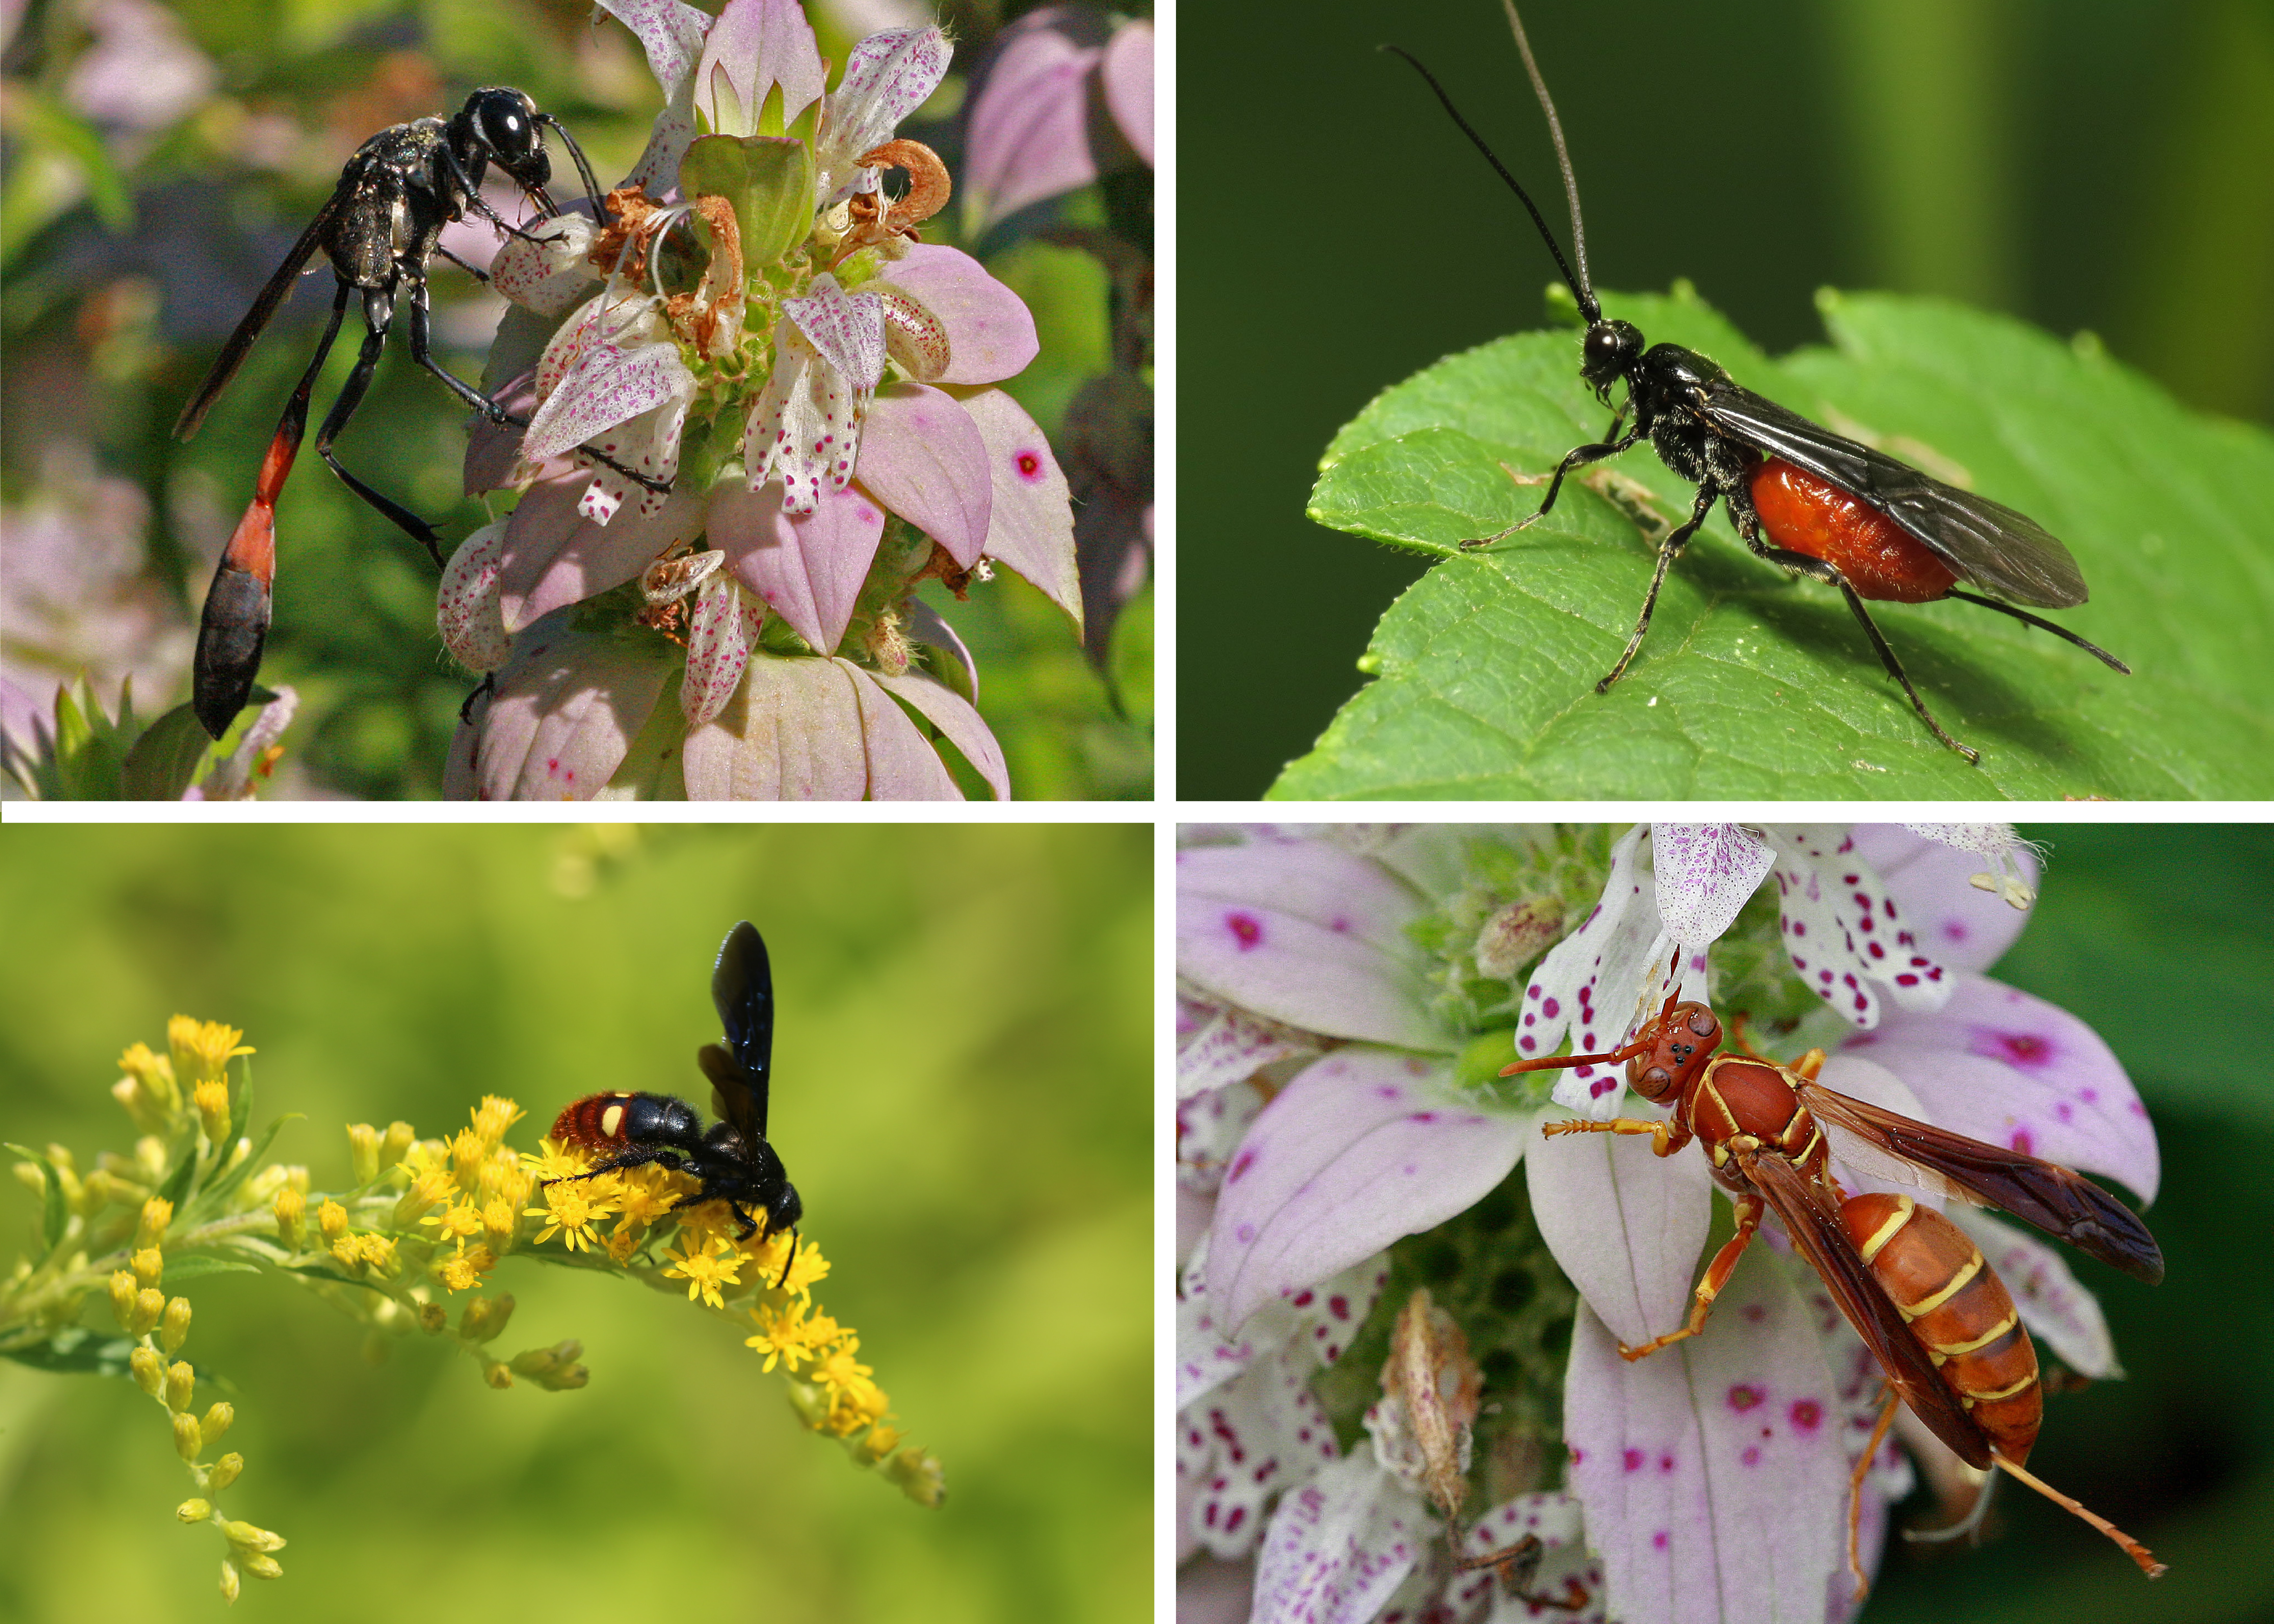 A colorful assortment of wasp photos demonstrates the diversity of species among this category of Hymenopterans.